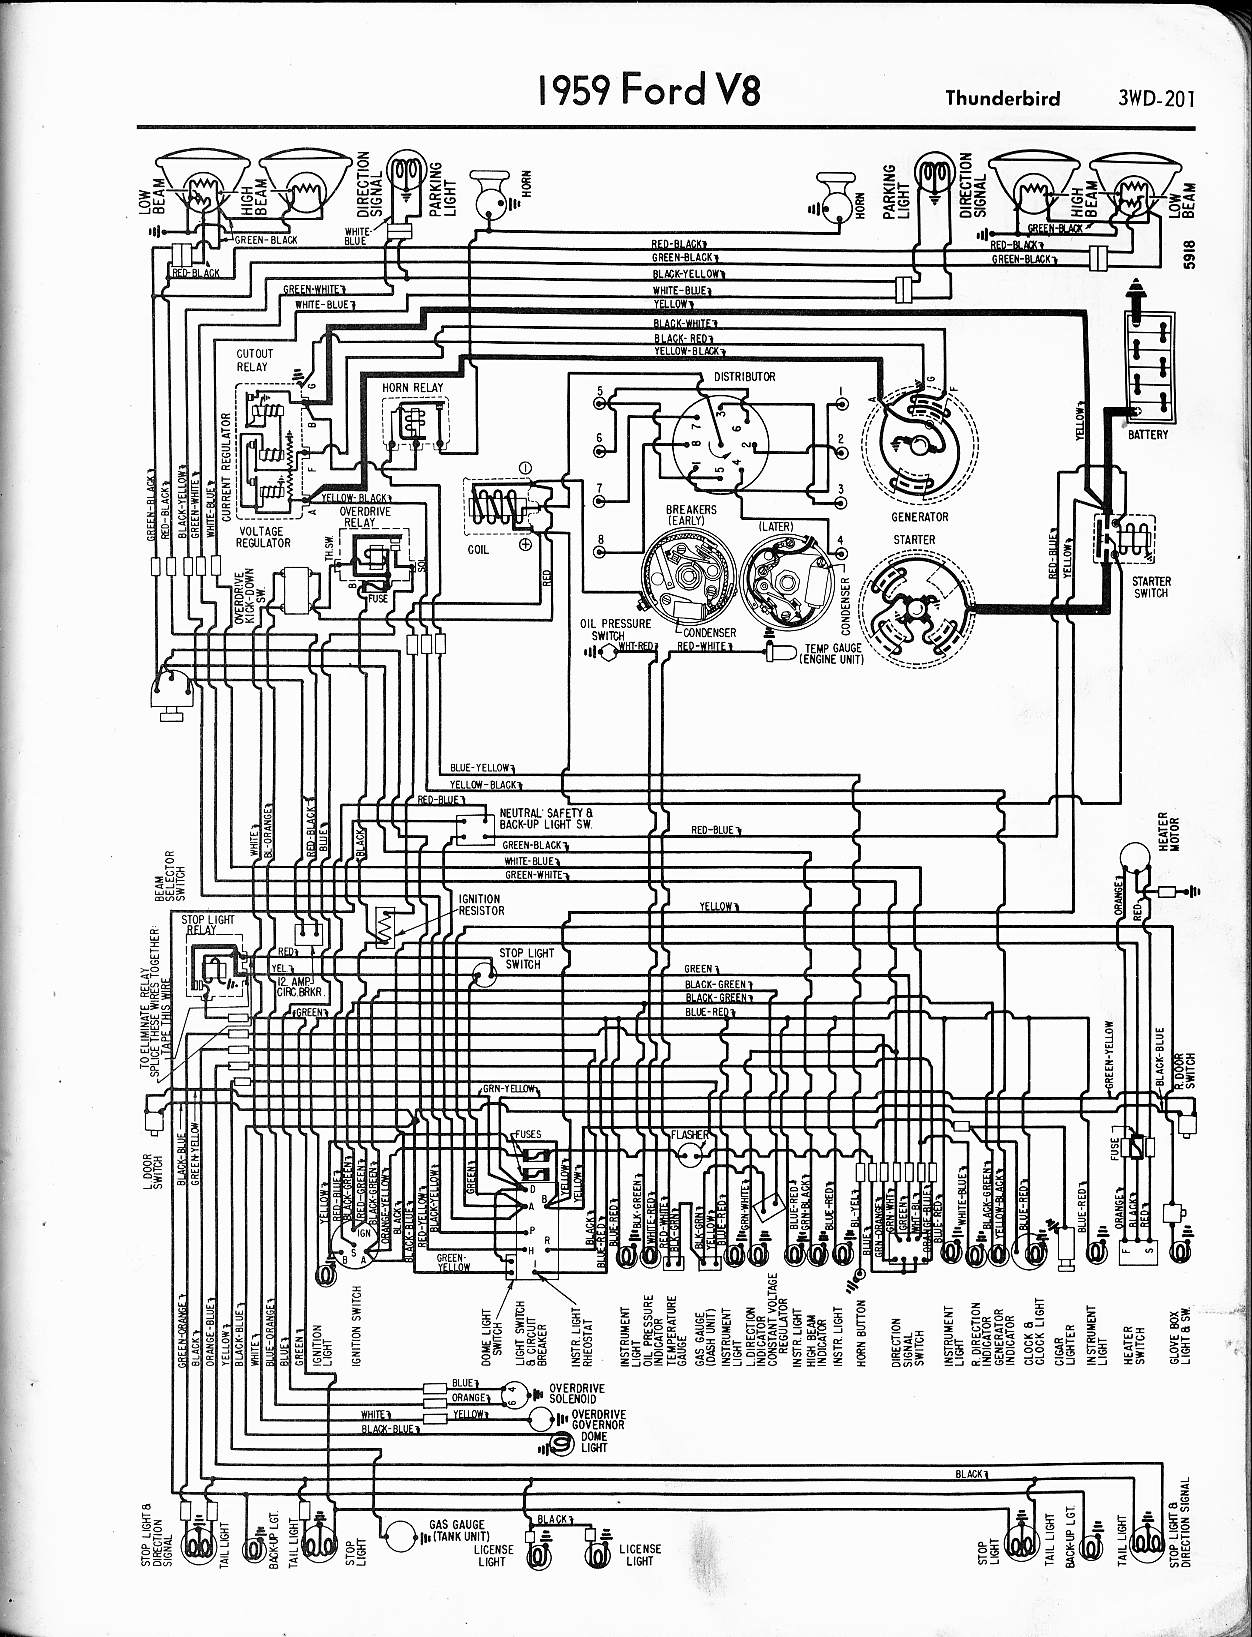 MWire5765 201 1960 ford wiring diagram 1960 ford f100 wiring diagram \u2022 wiring  at bayanpartner.co